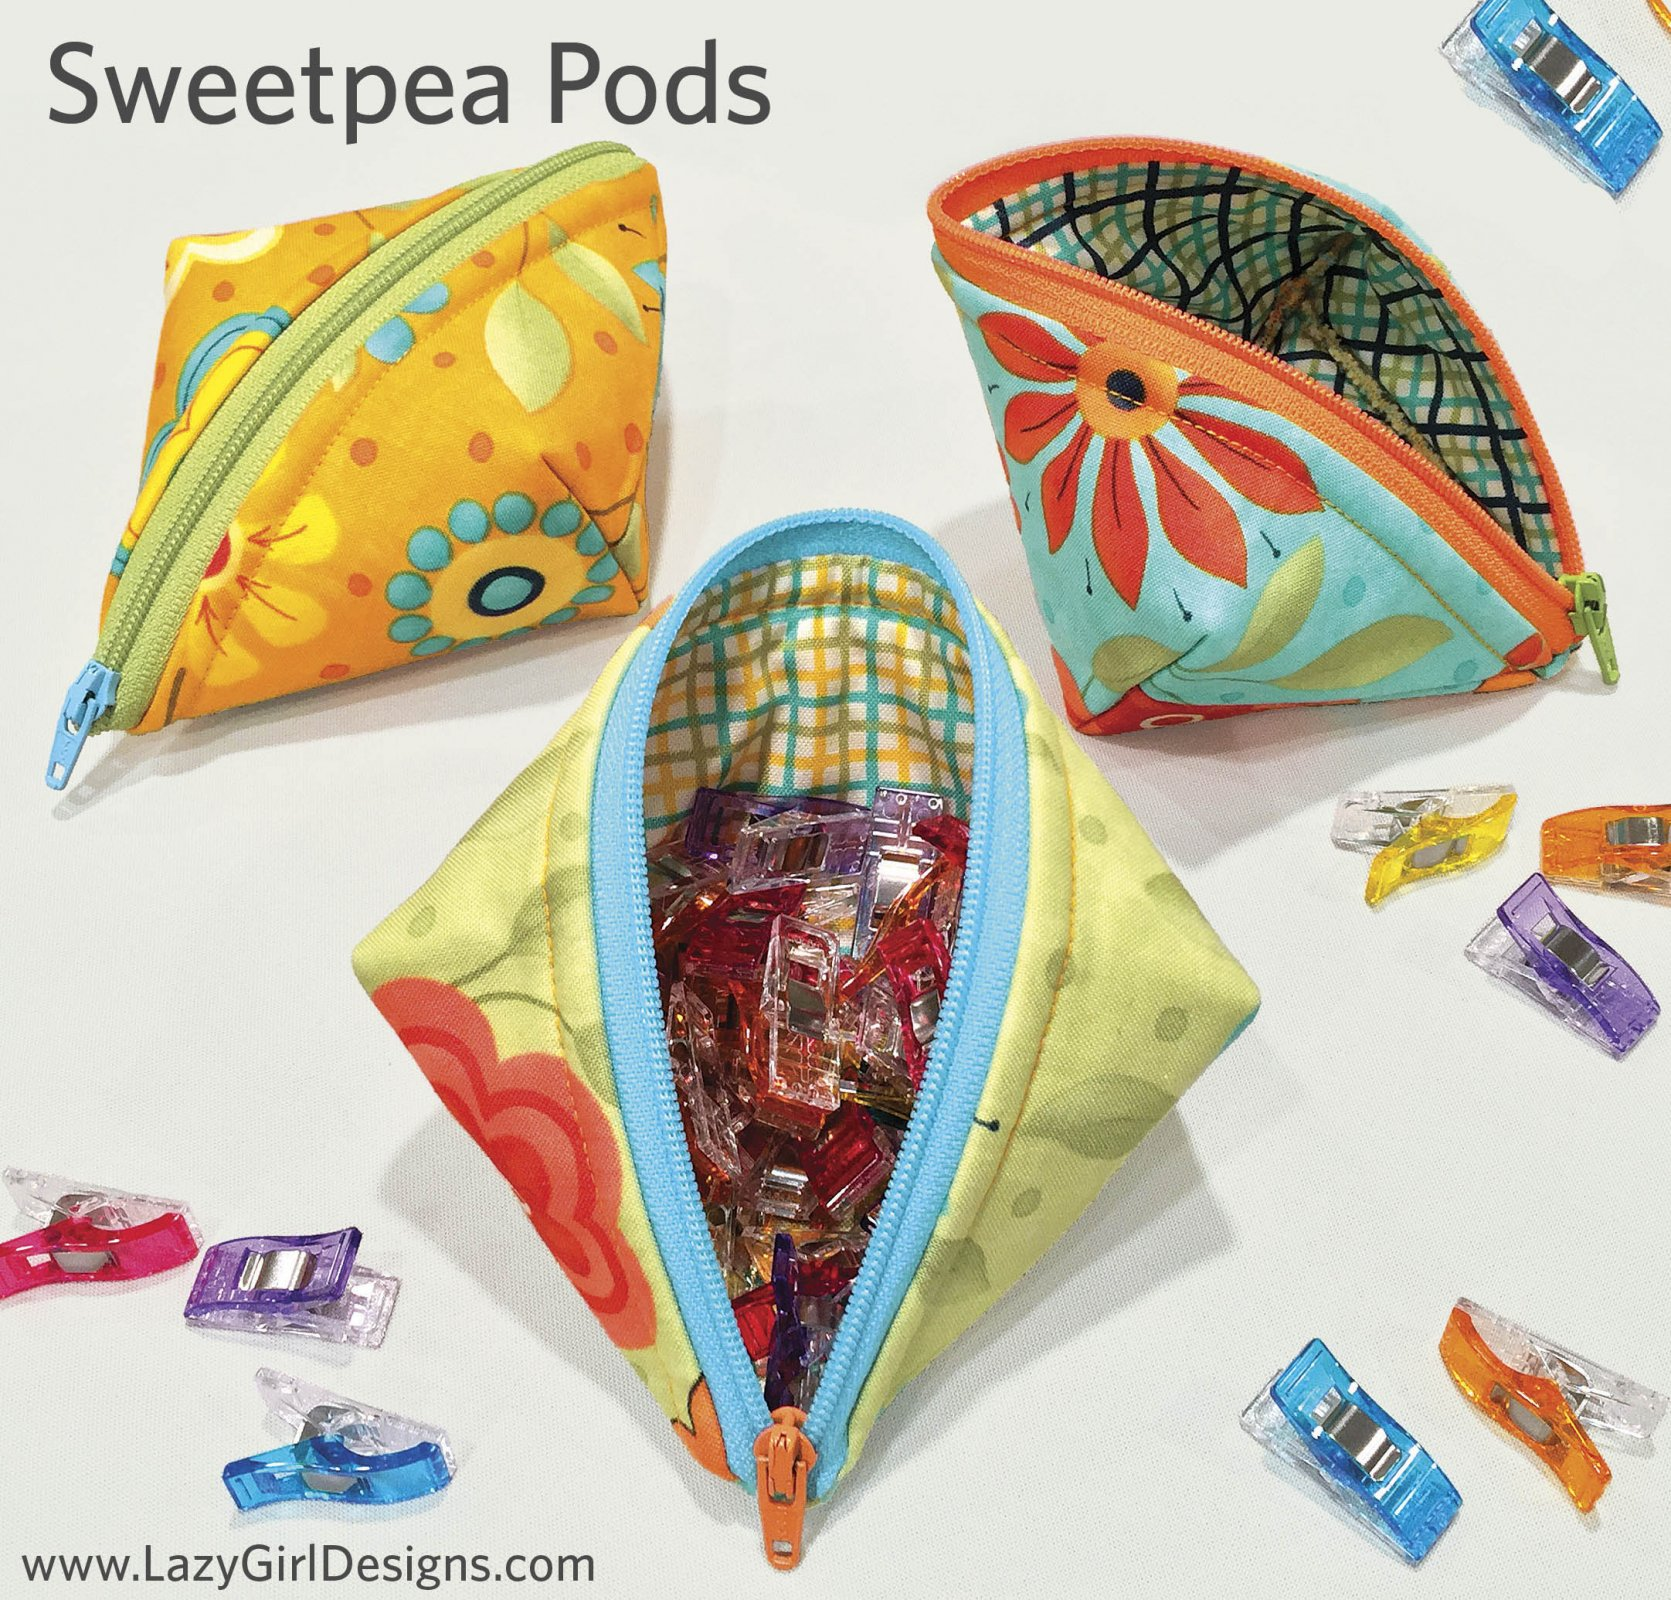 Sweetpea Pods Lazy Girl Design